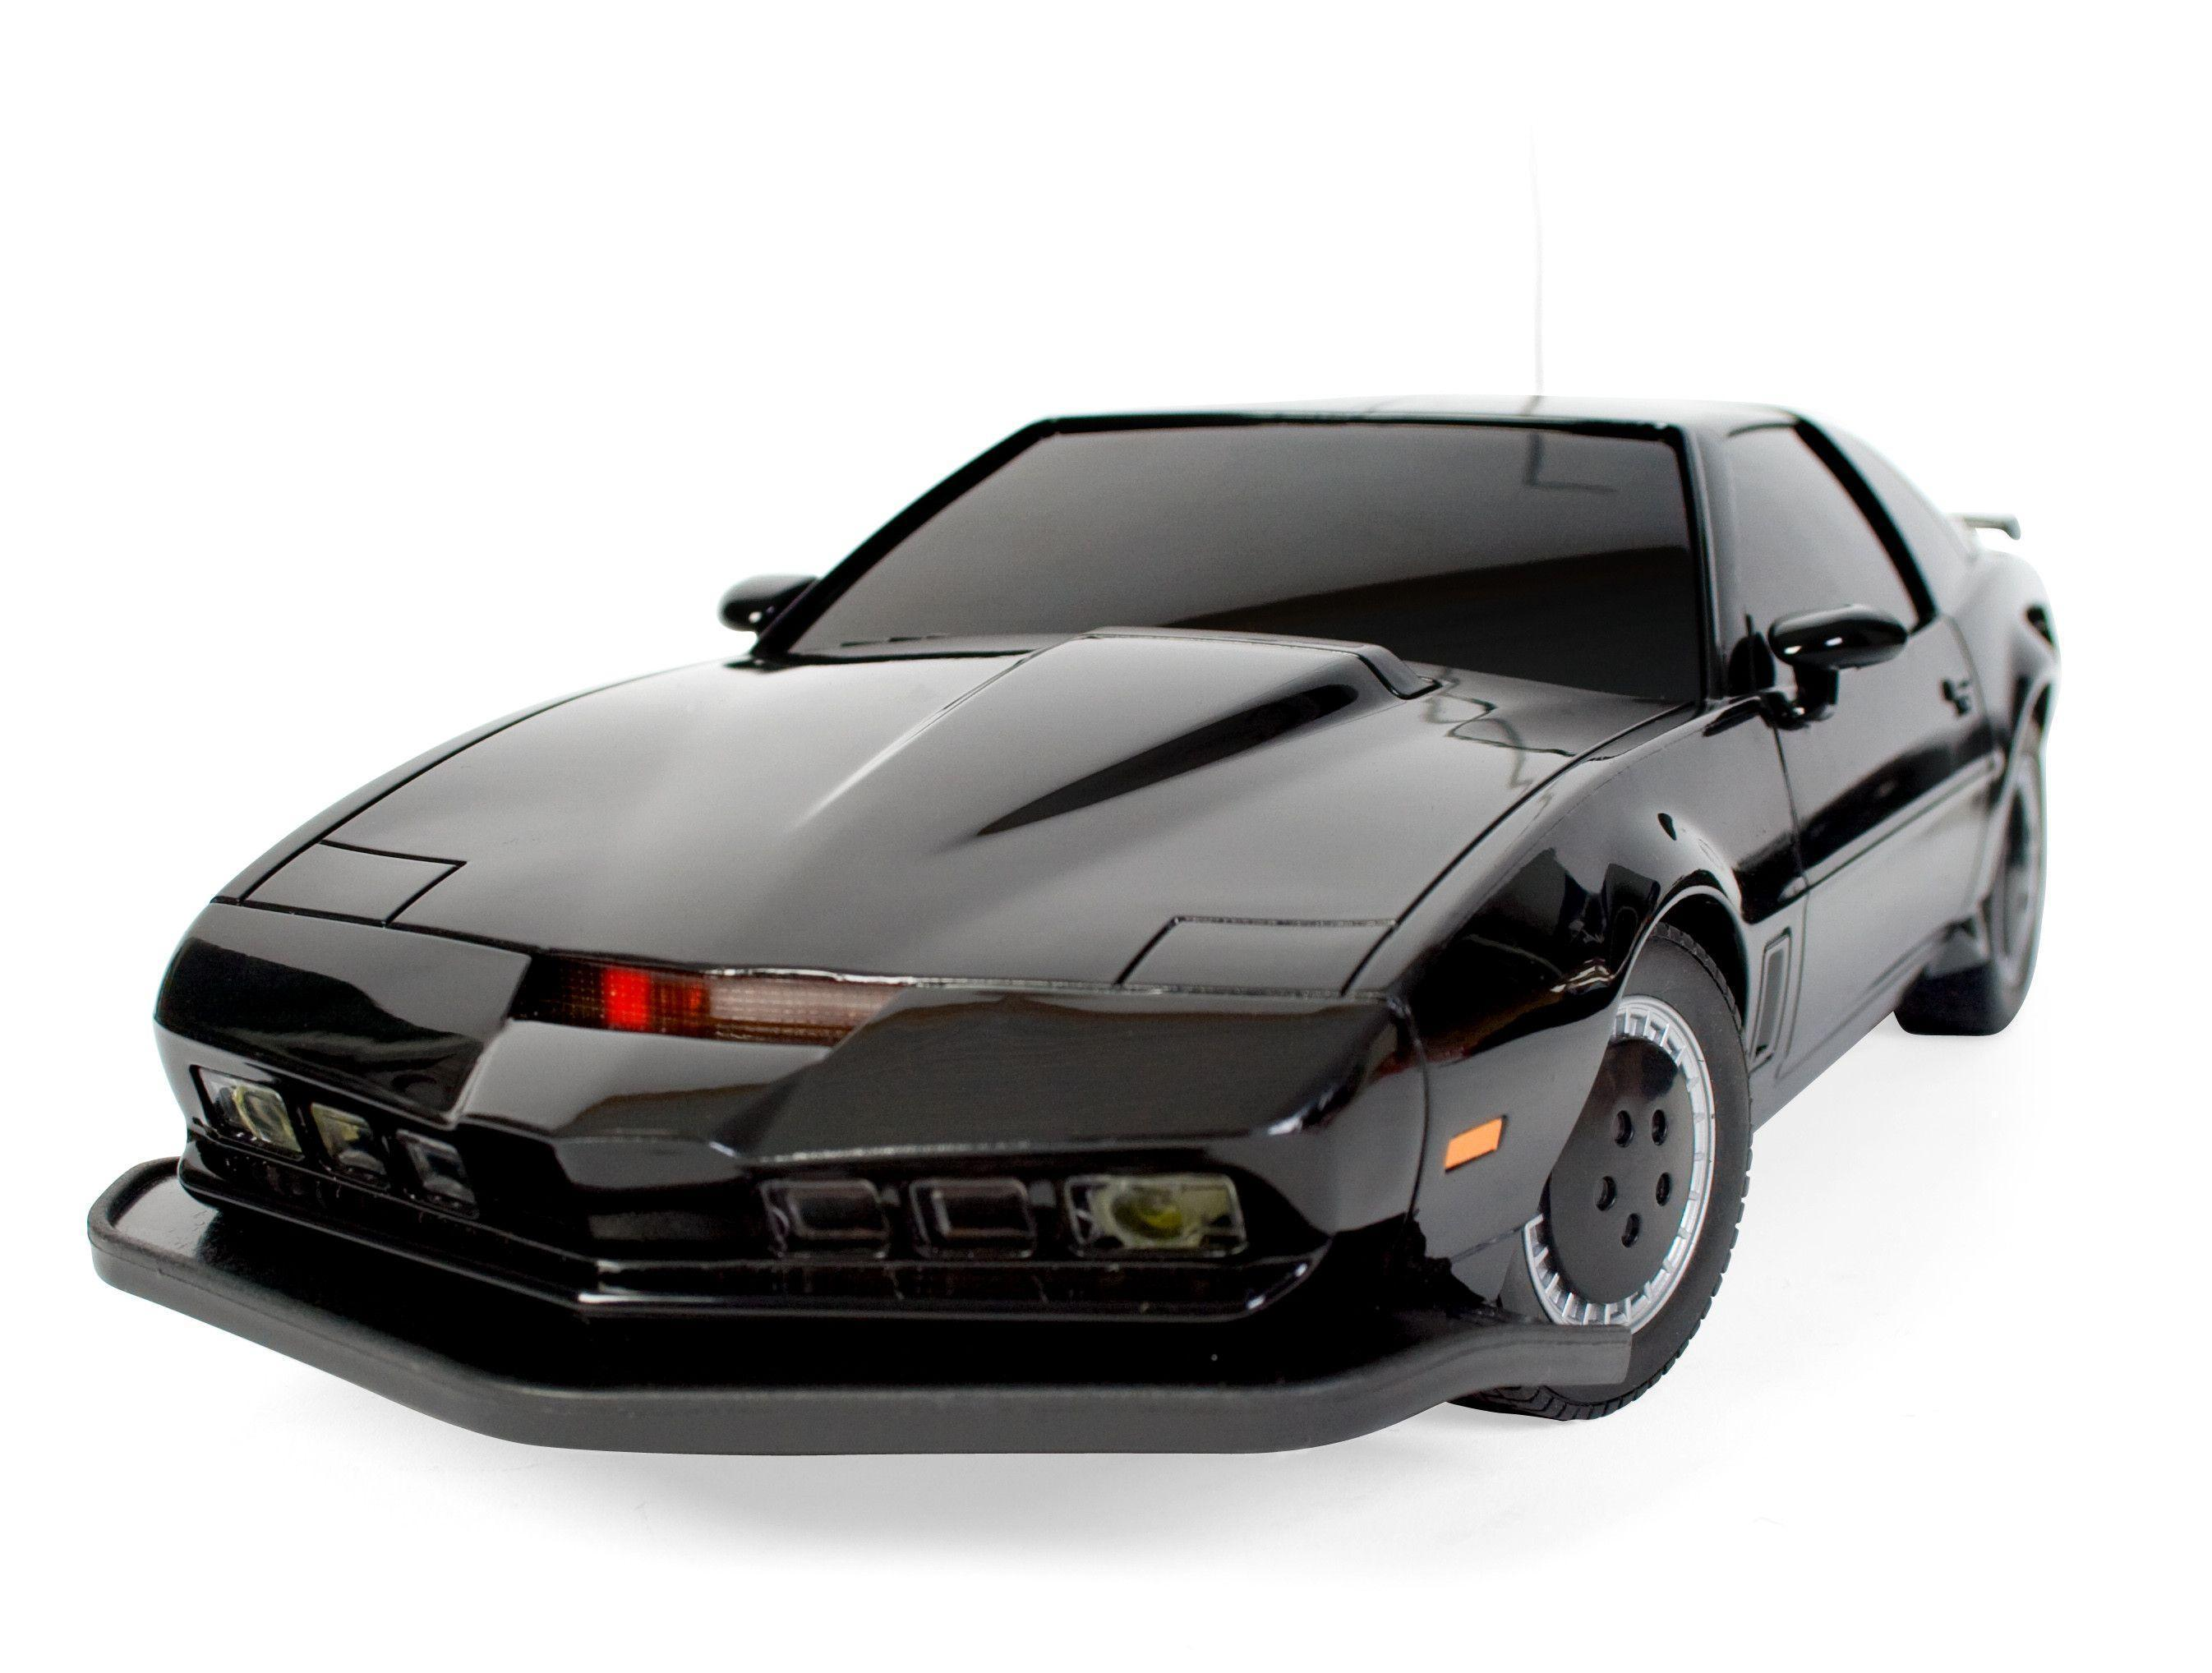 knight rider car wallpapers wallpaper cave. Black Bedroom Furniture Sets. Home Design Ideas